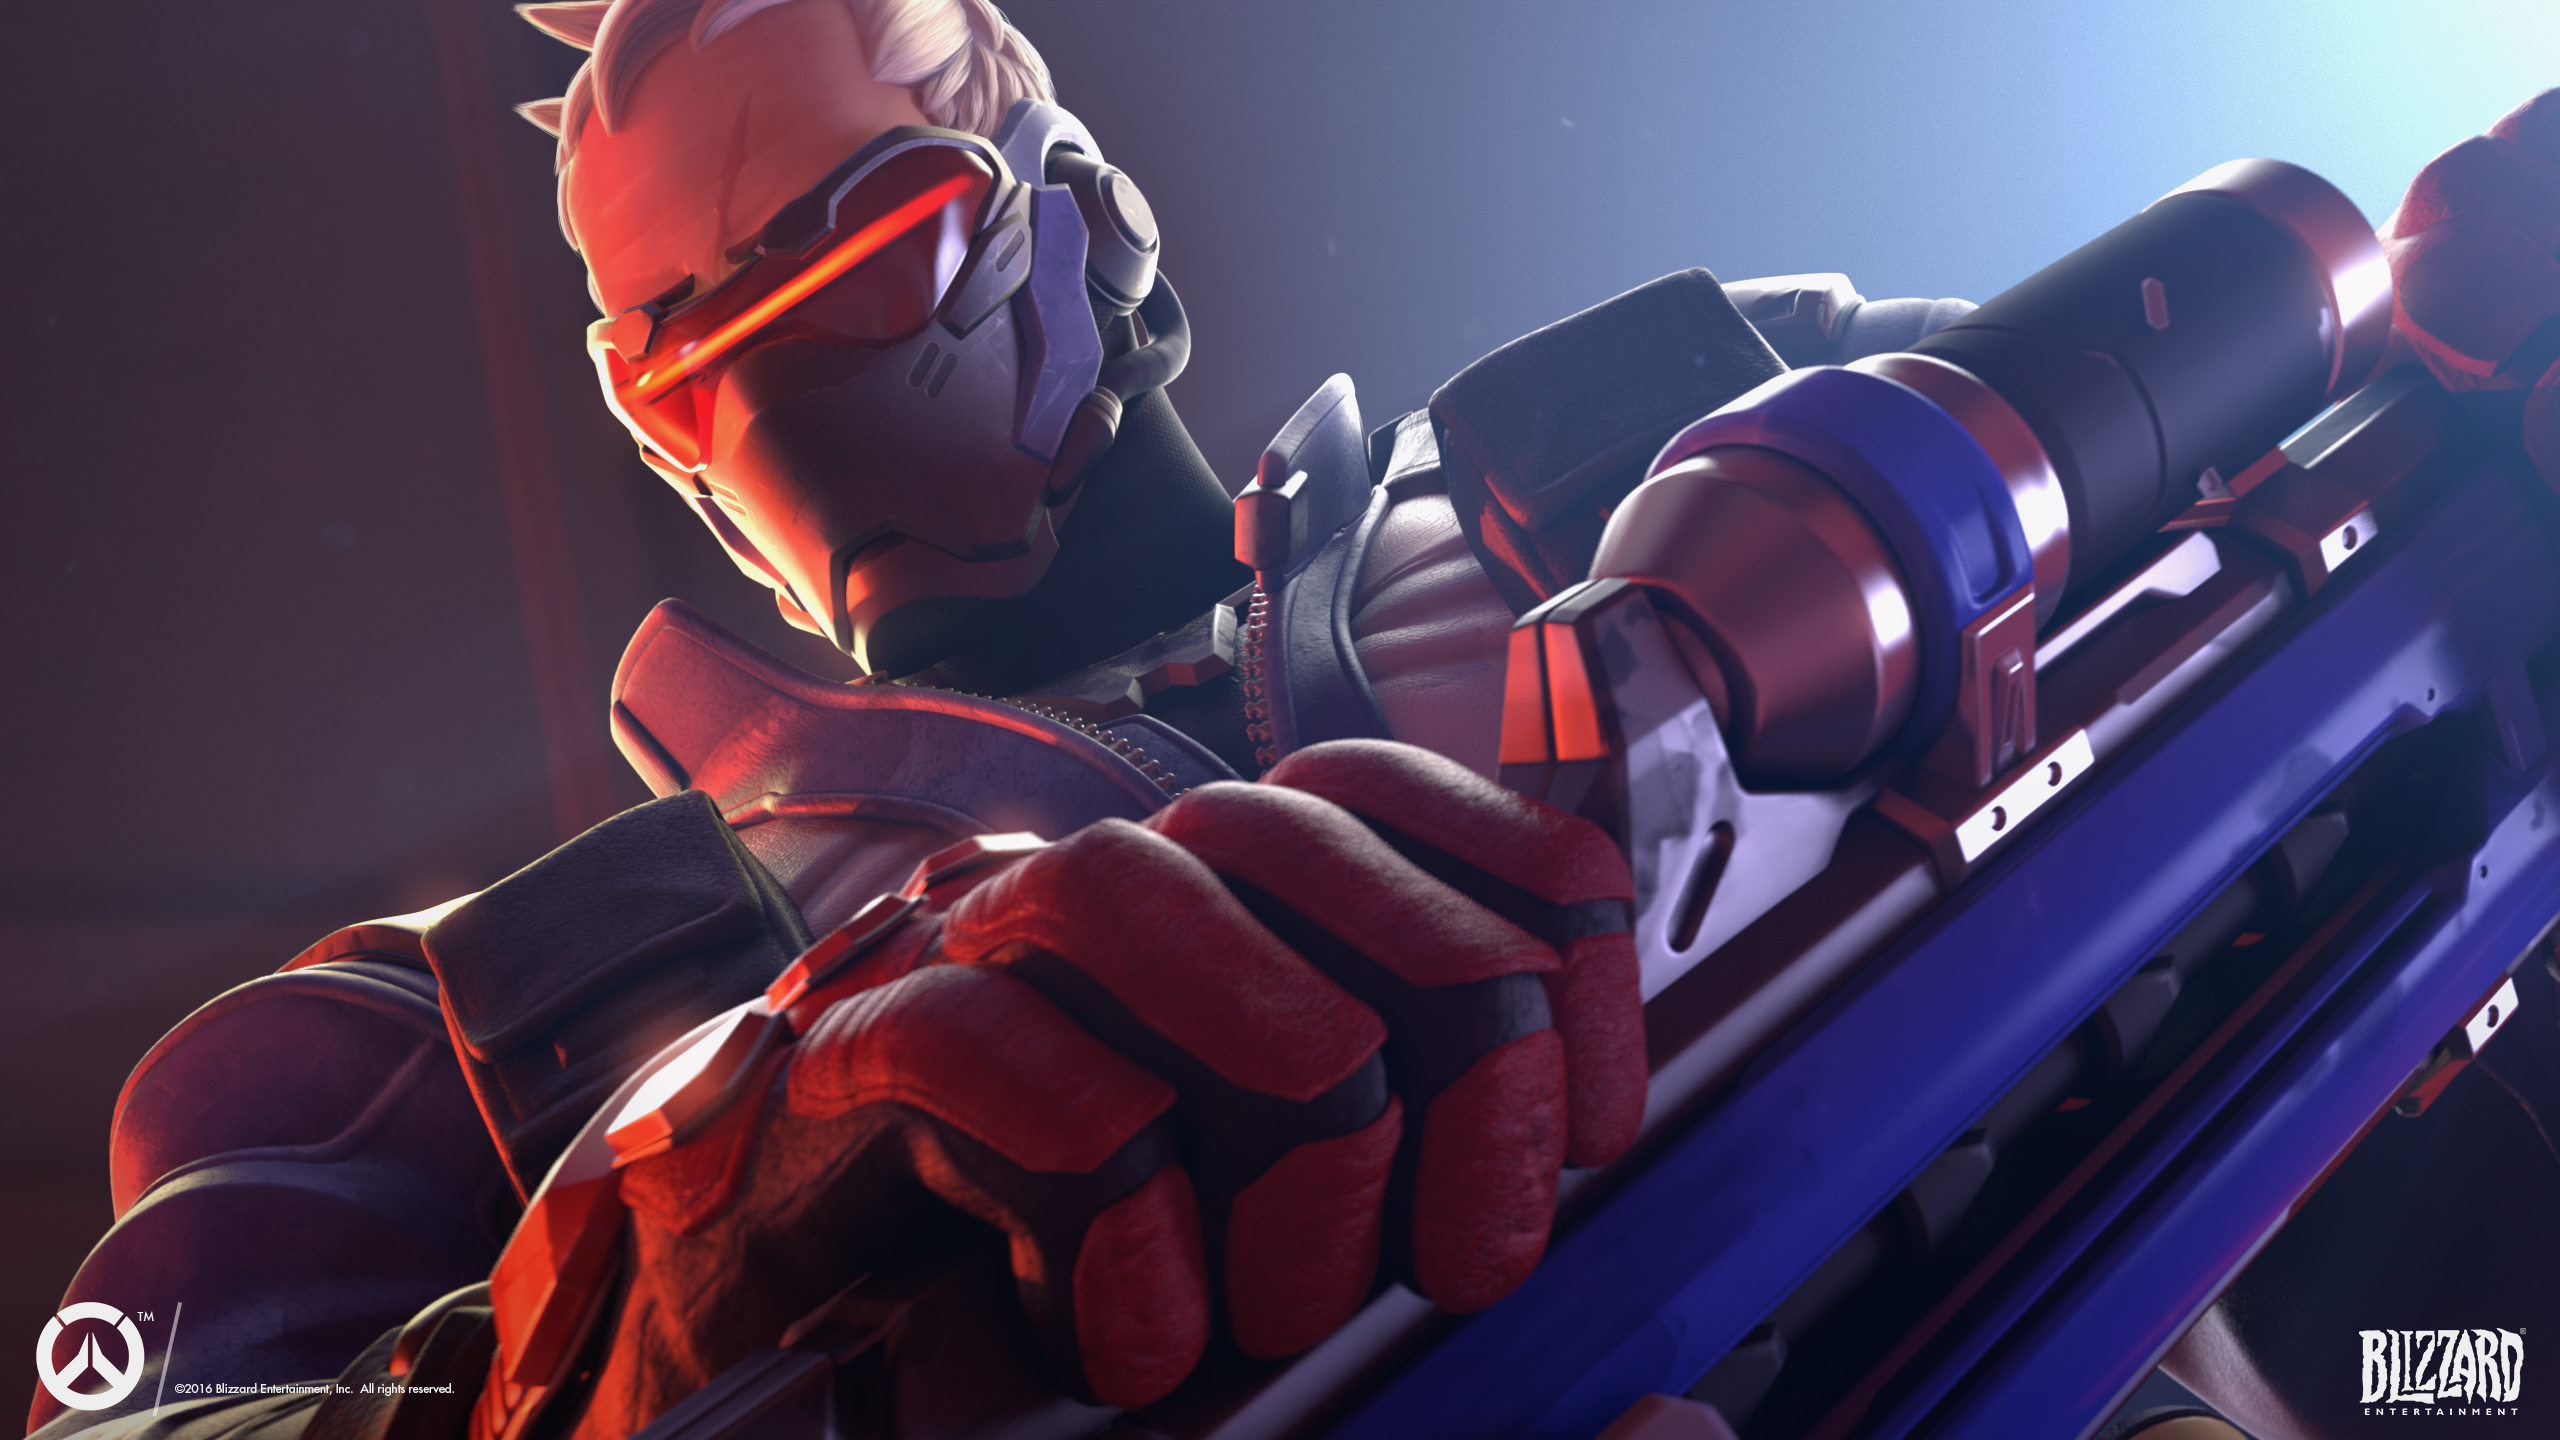 Soldier 76 Overwatch Wallpapers HD Wallpapers 2560x1440